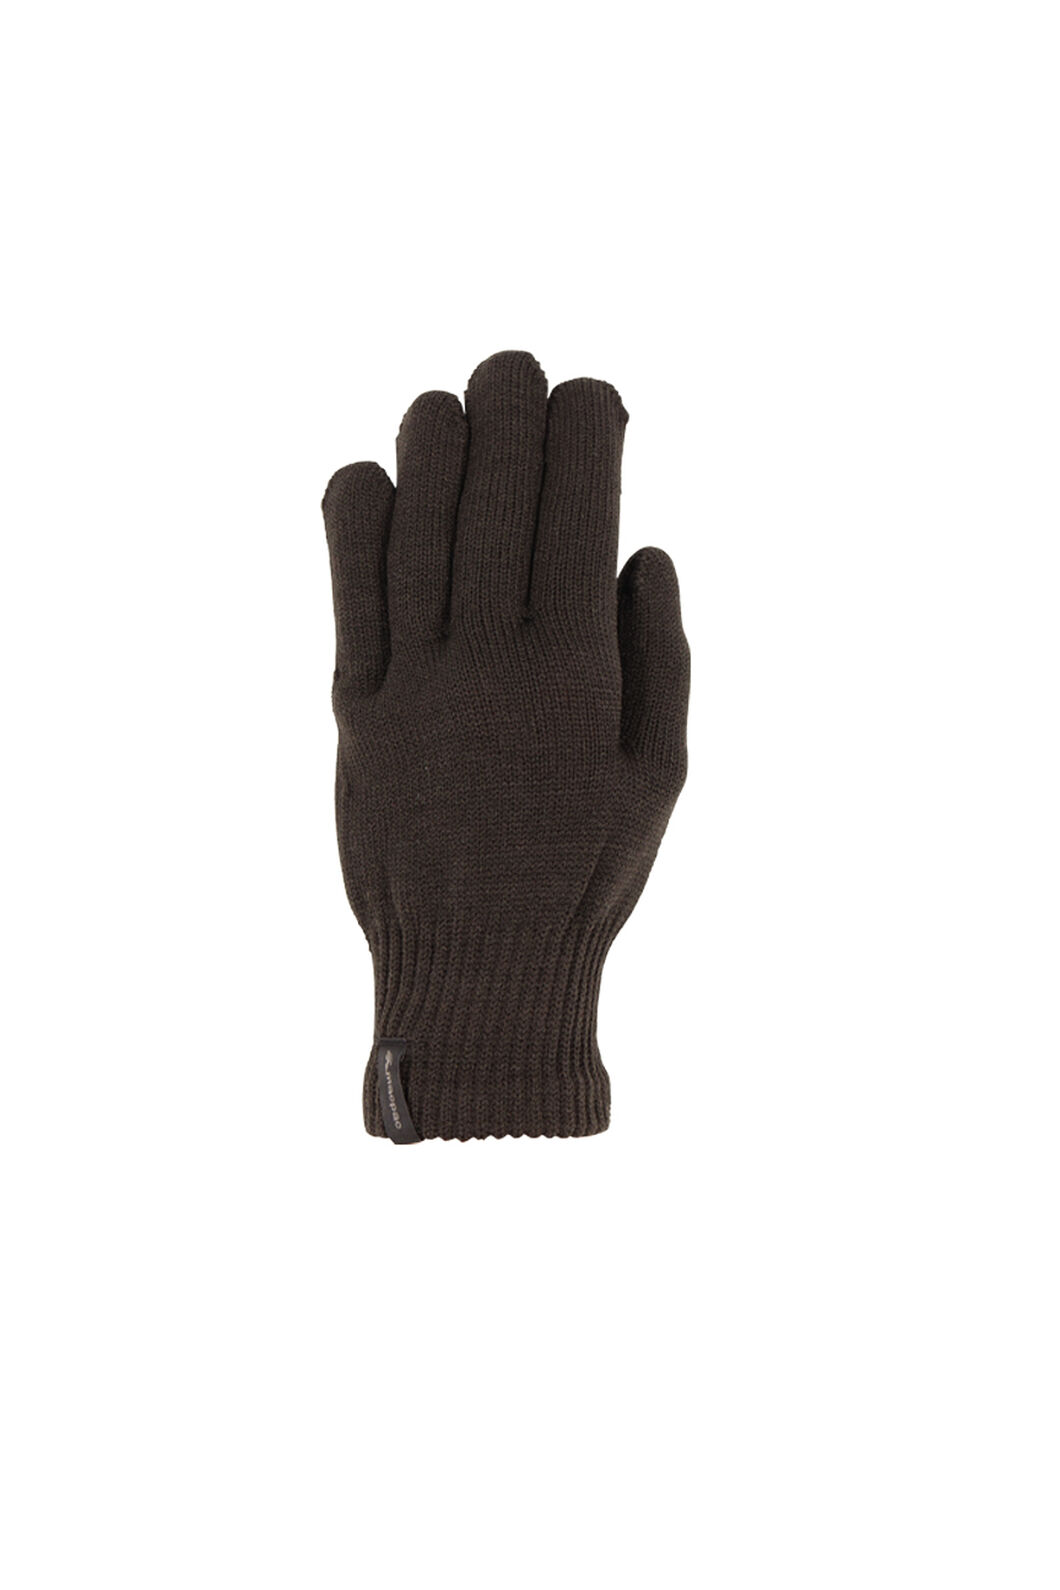 Macpac Polypro Gloves, Black, hi-res